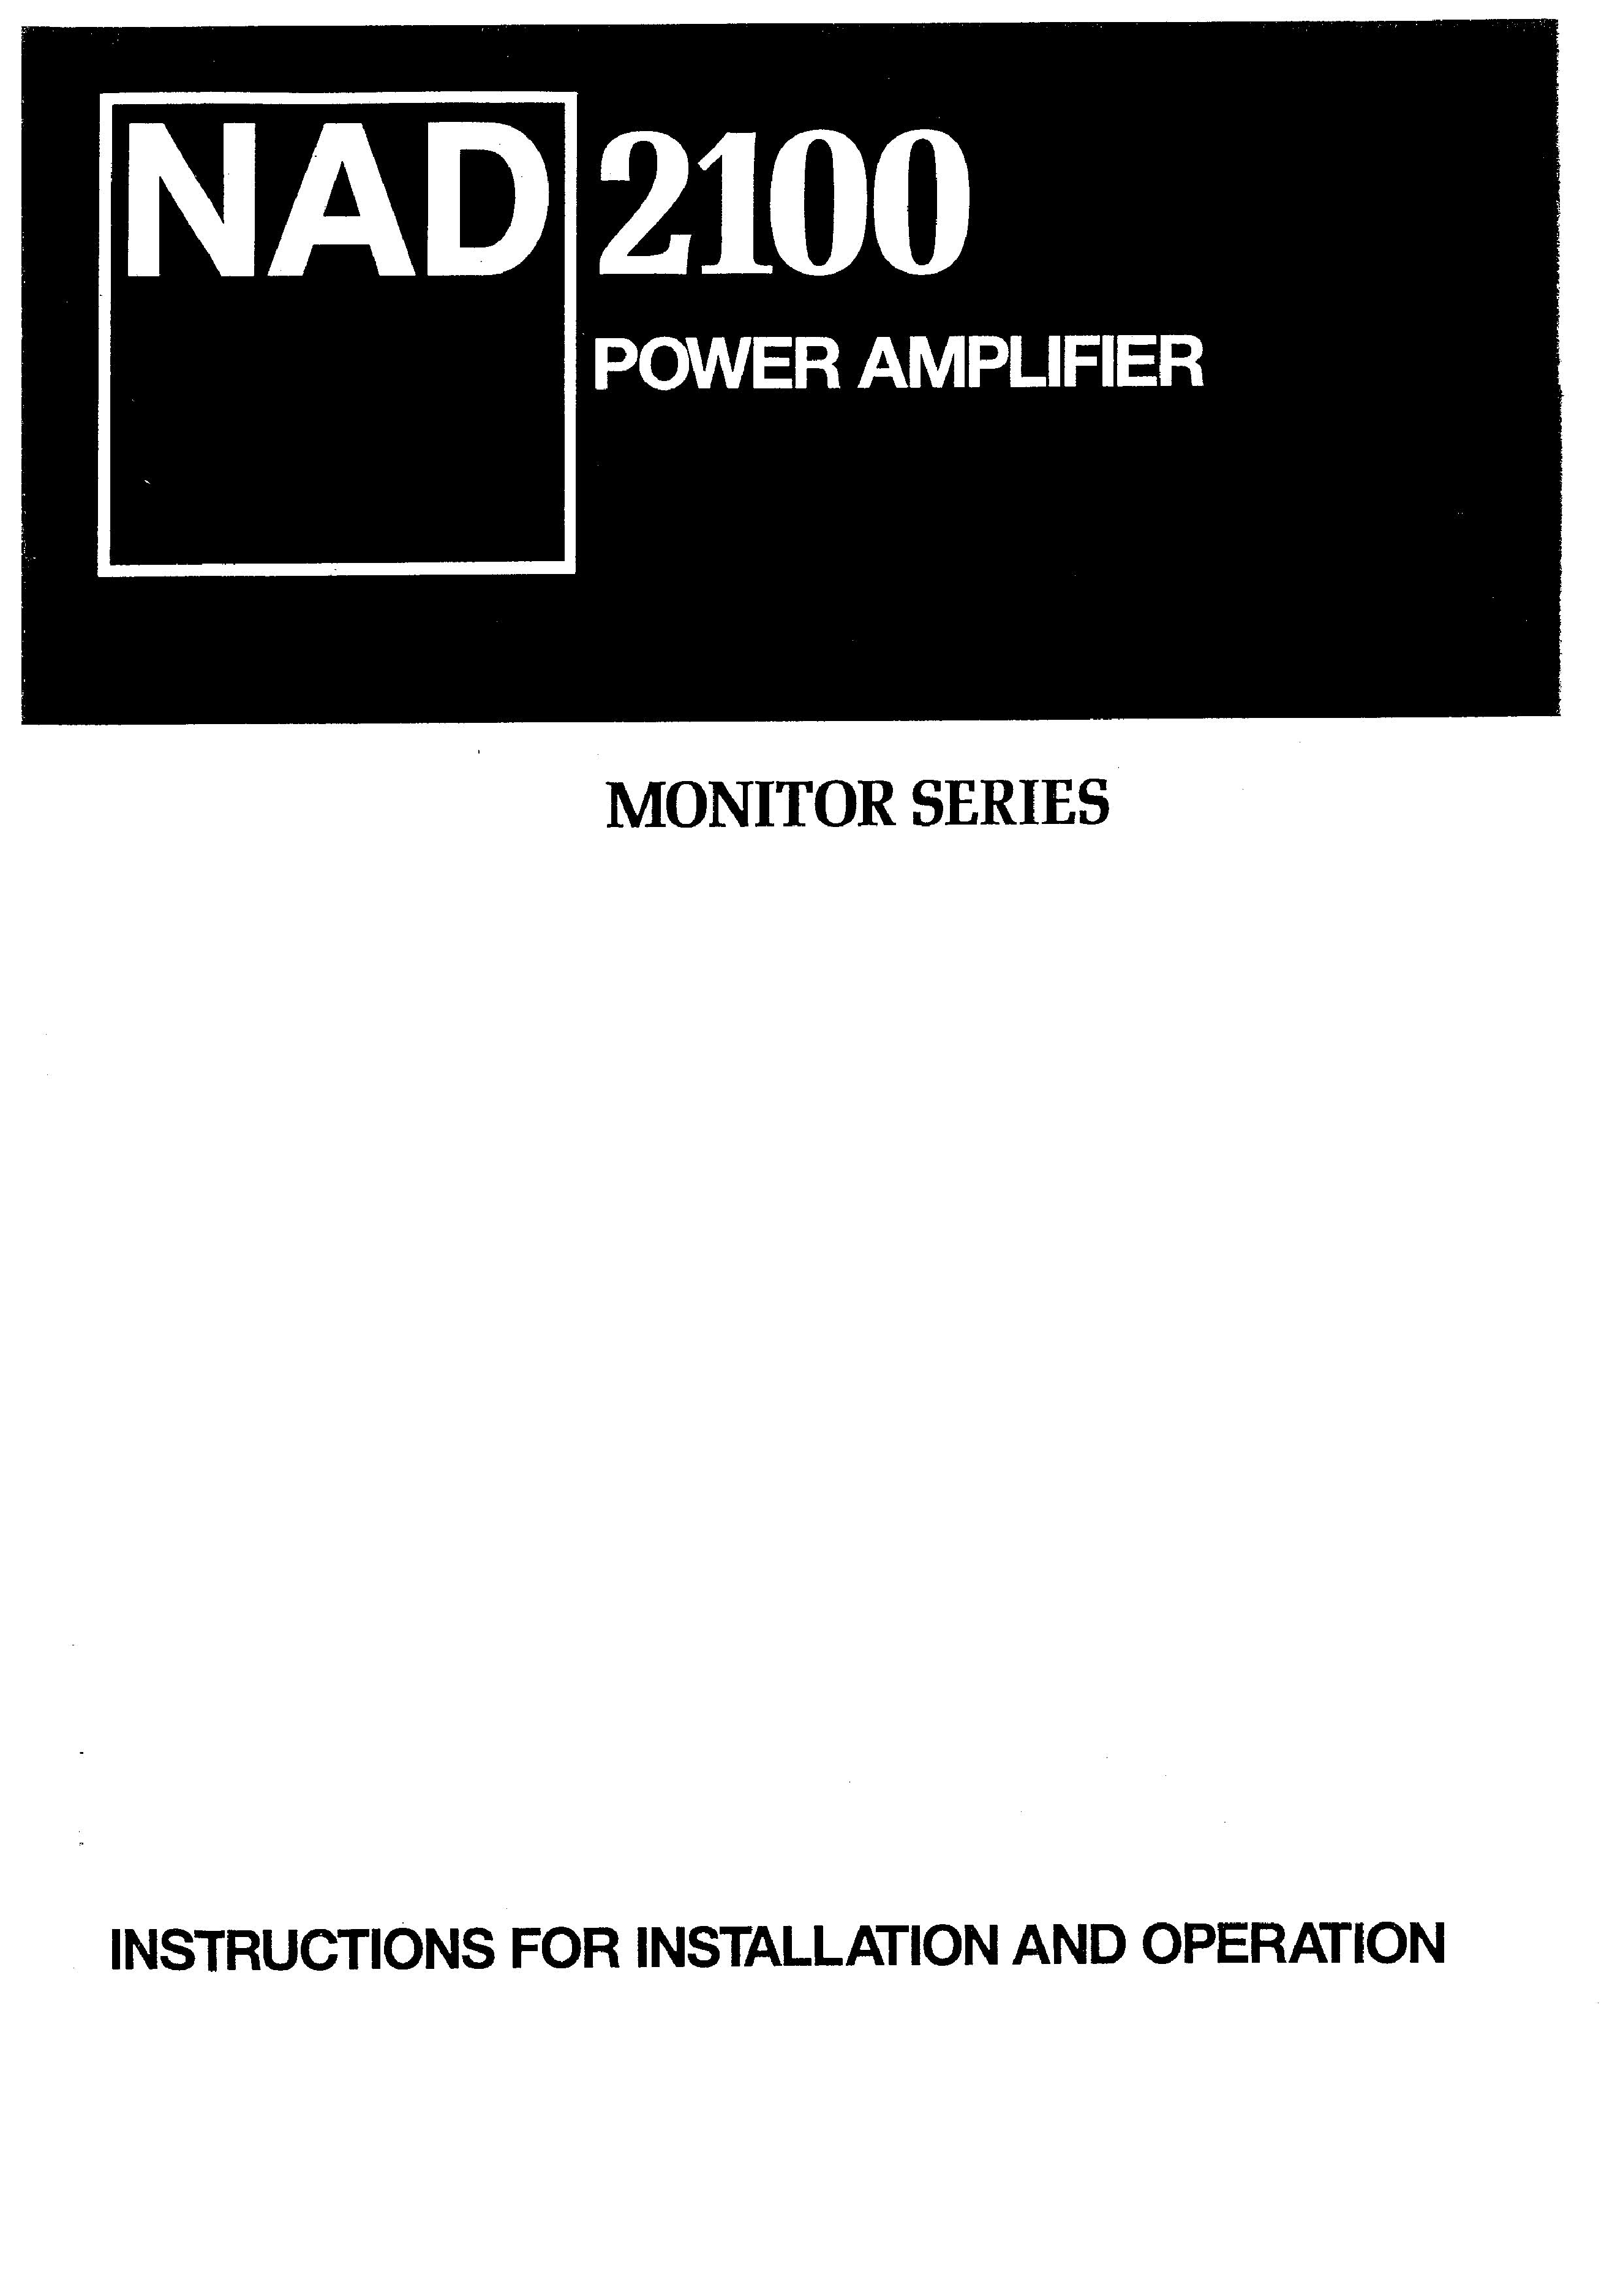 NAD 2100 - Owner's Manual Immediate Download